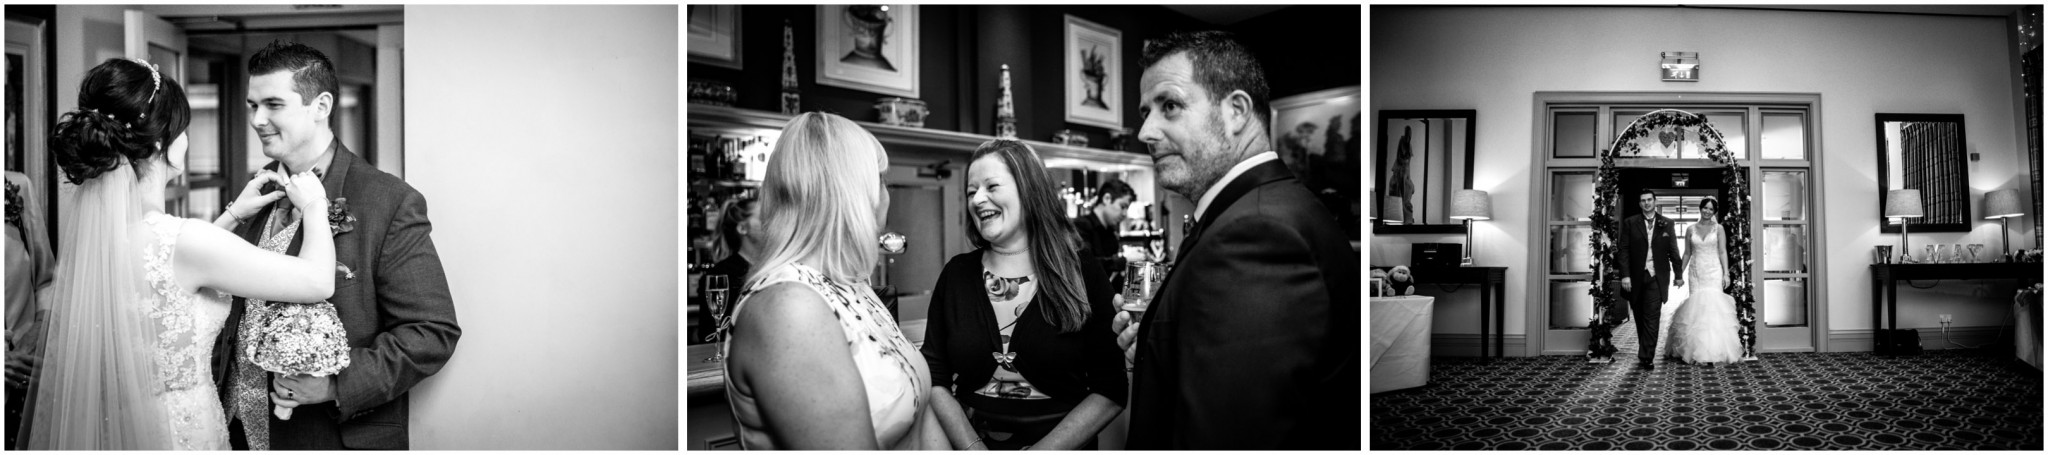 bowood-hotel-wedding-photography-ria-chris-032